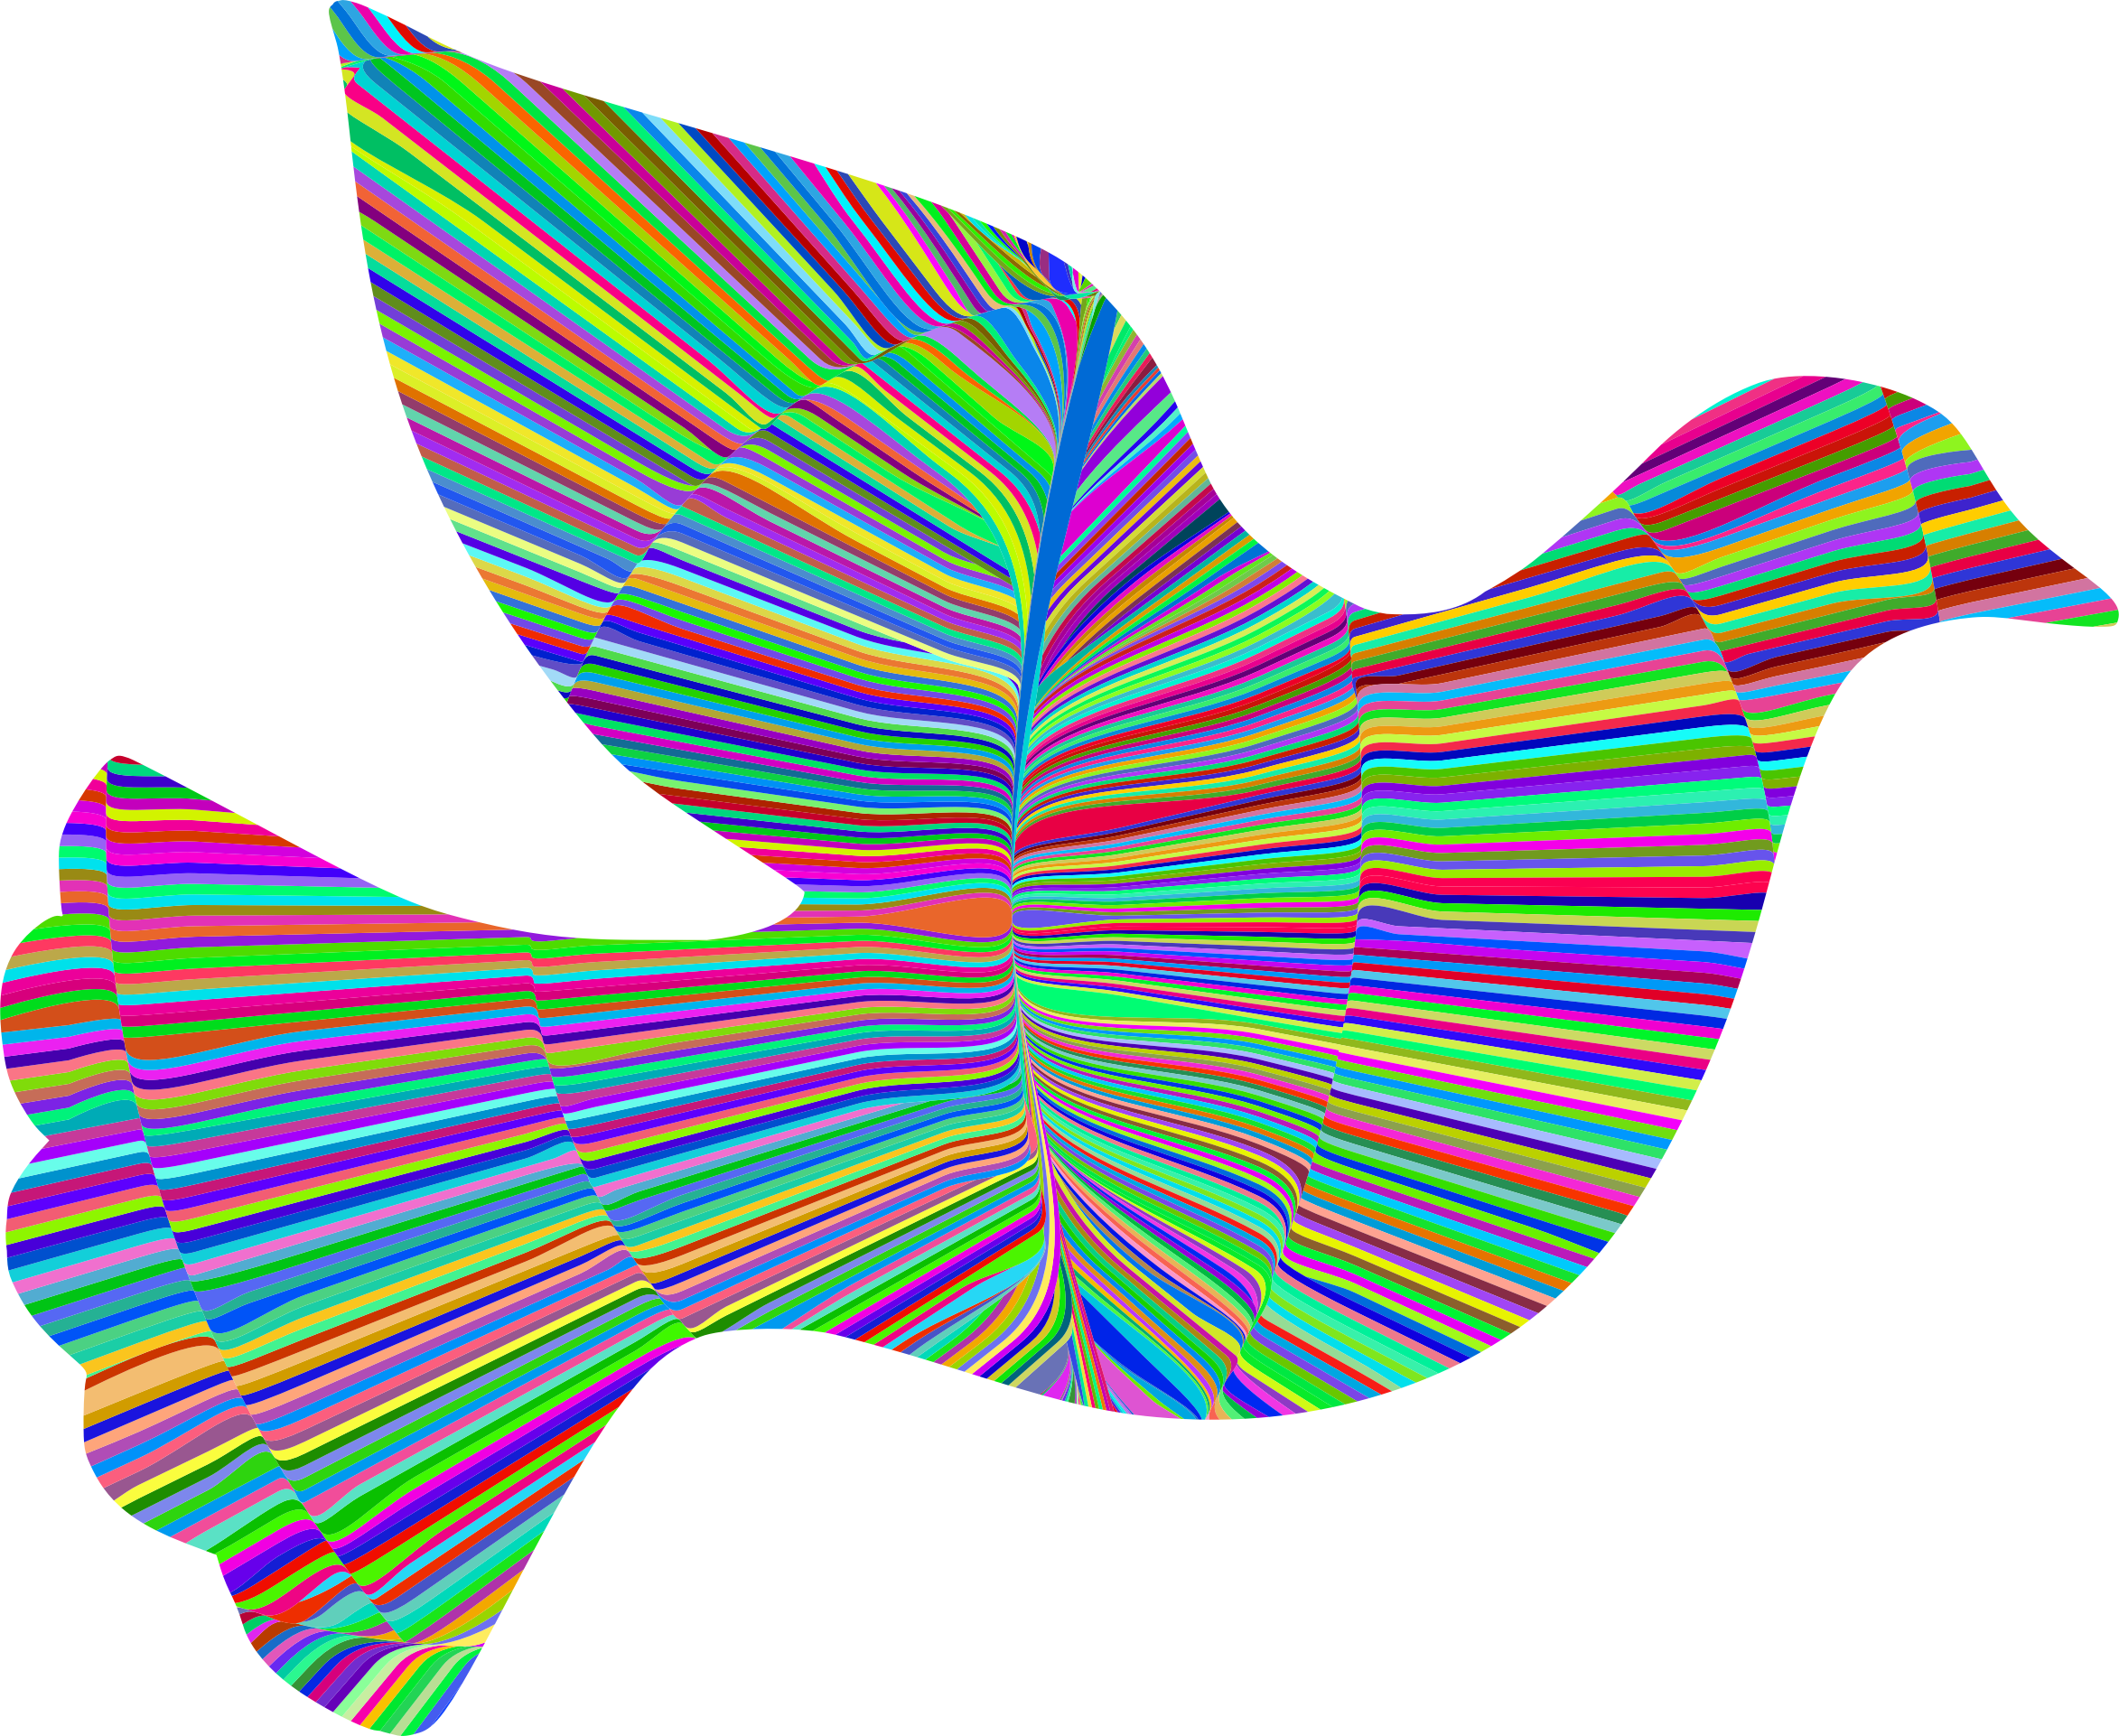 Psychedelic Waves Peace Dove by GDJ